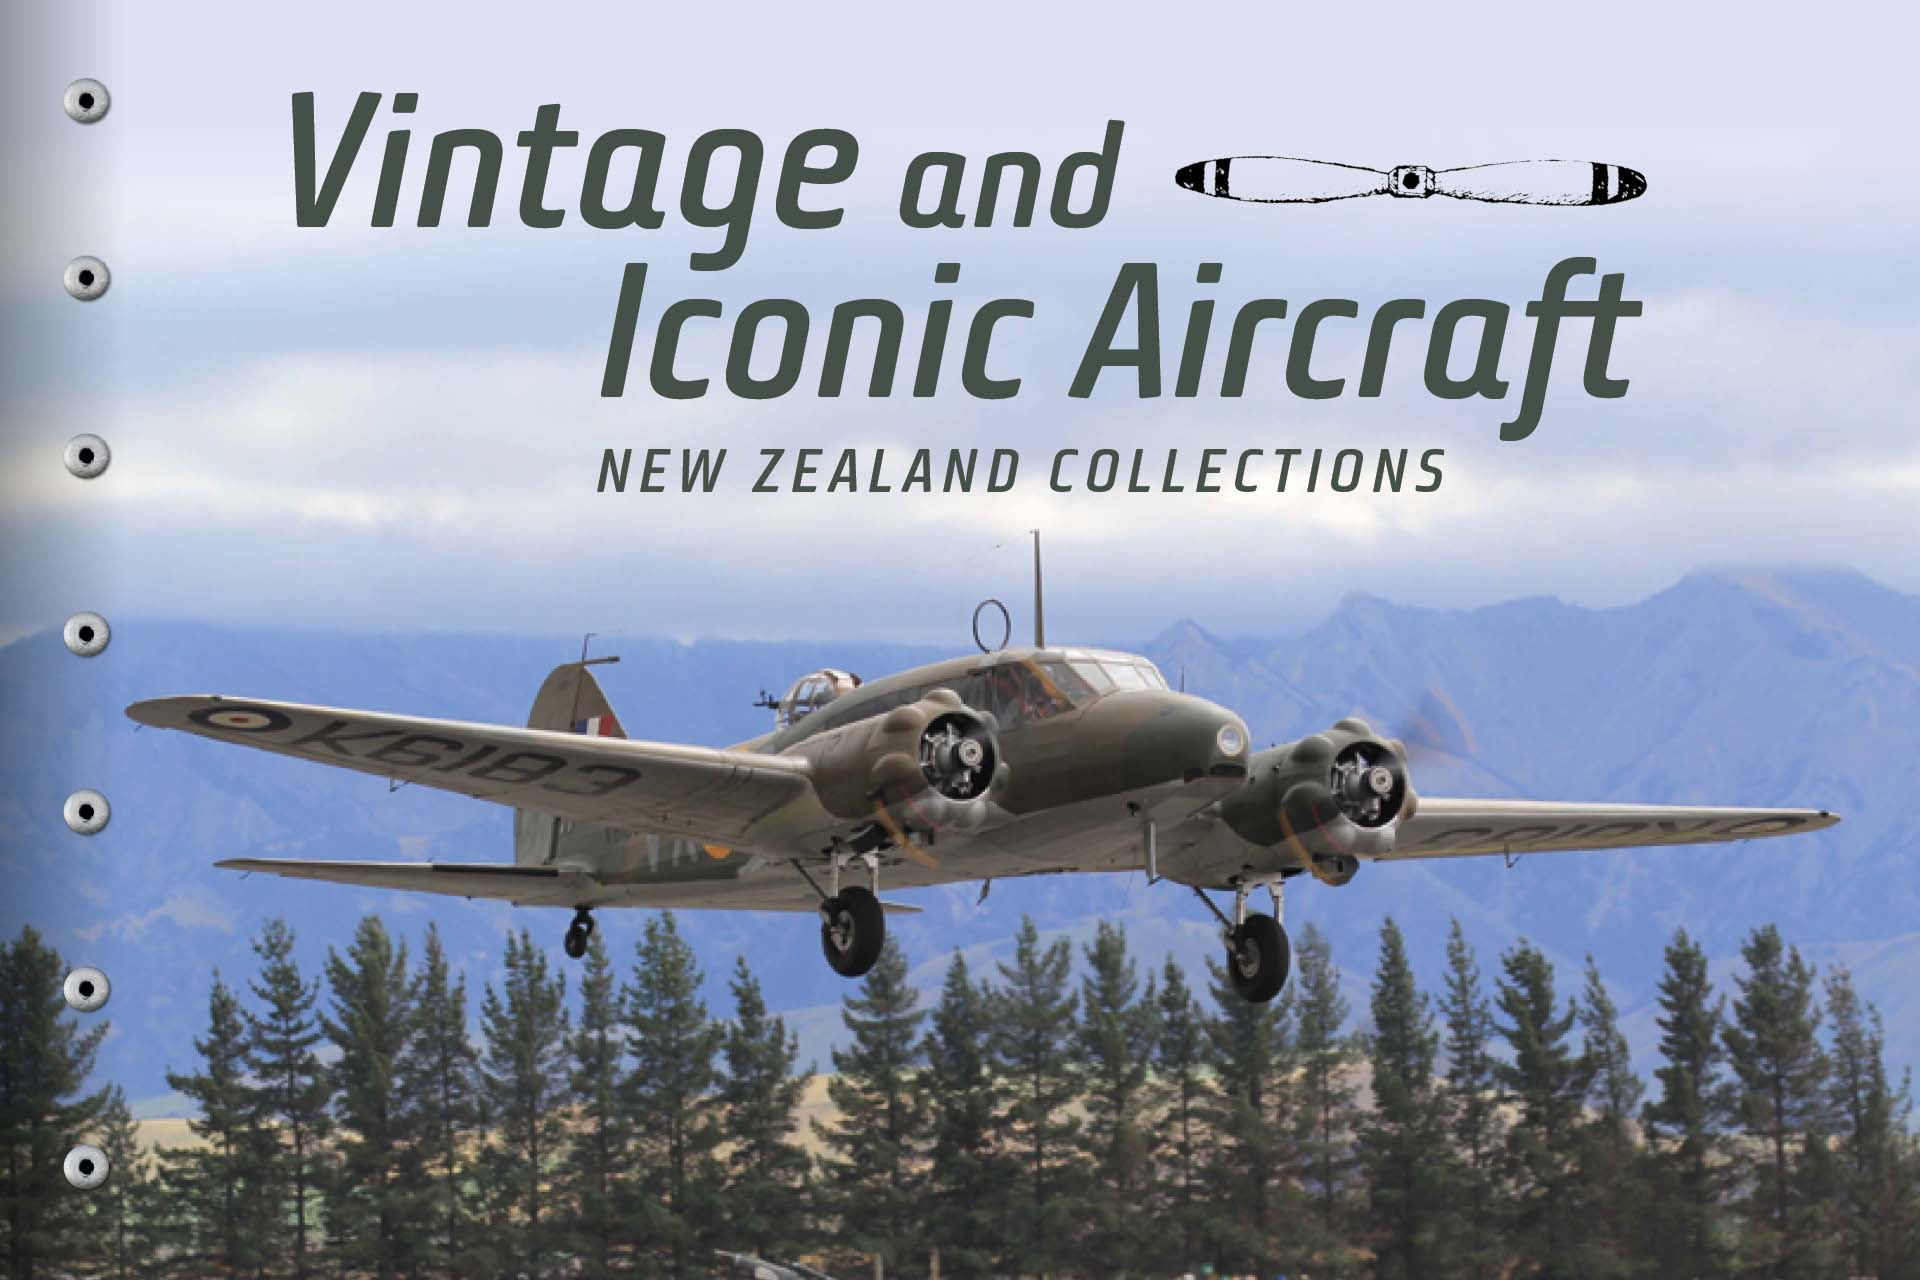 Vintage and Iconic Aircraft